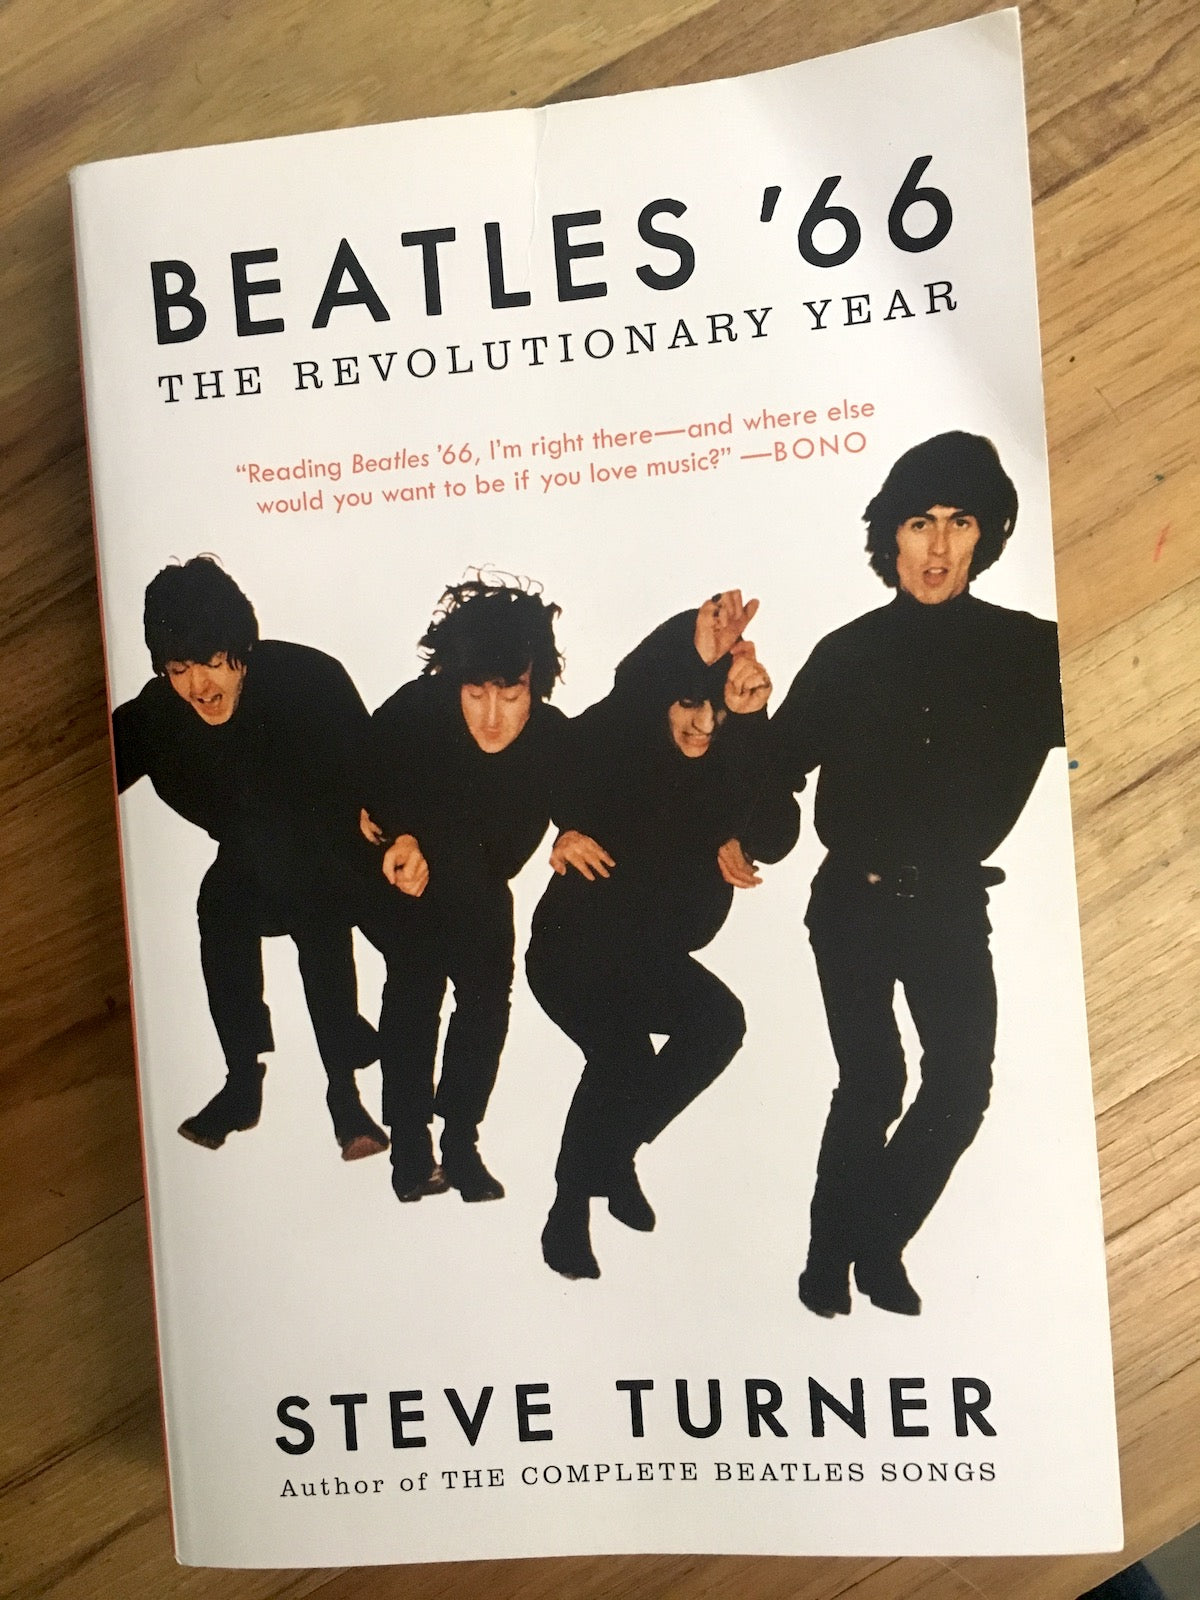 Paperback cover of Beatles '66: The Revolutionary Year by Steve Turner